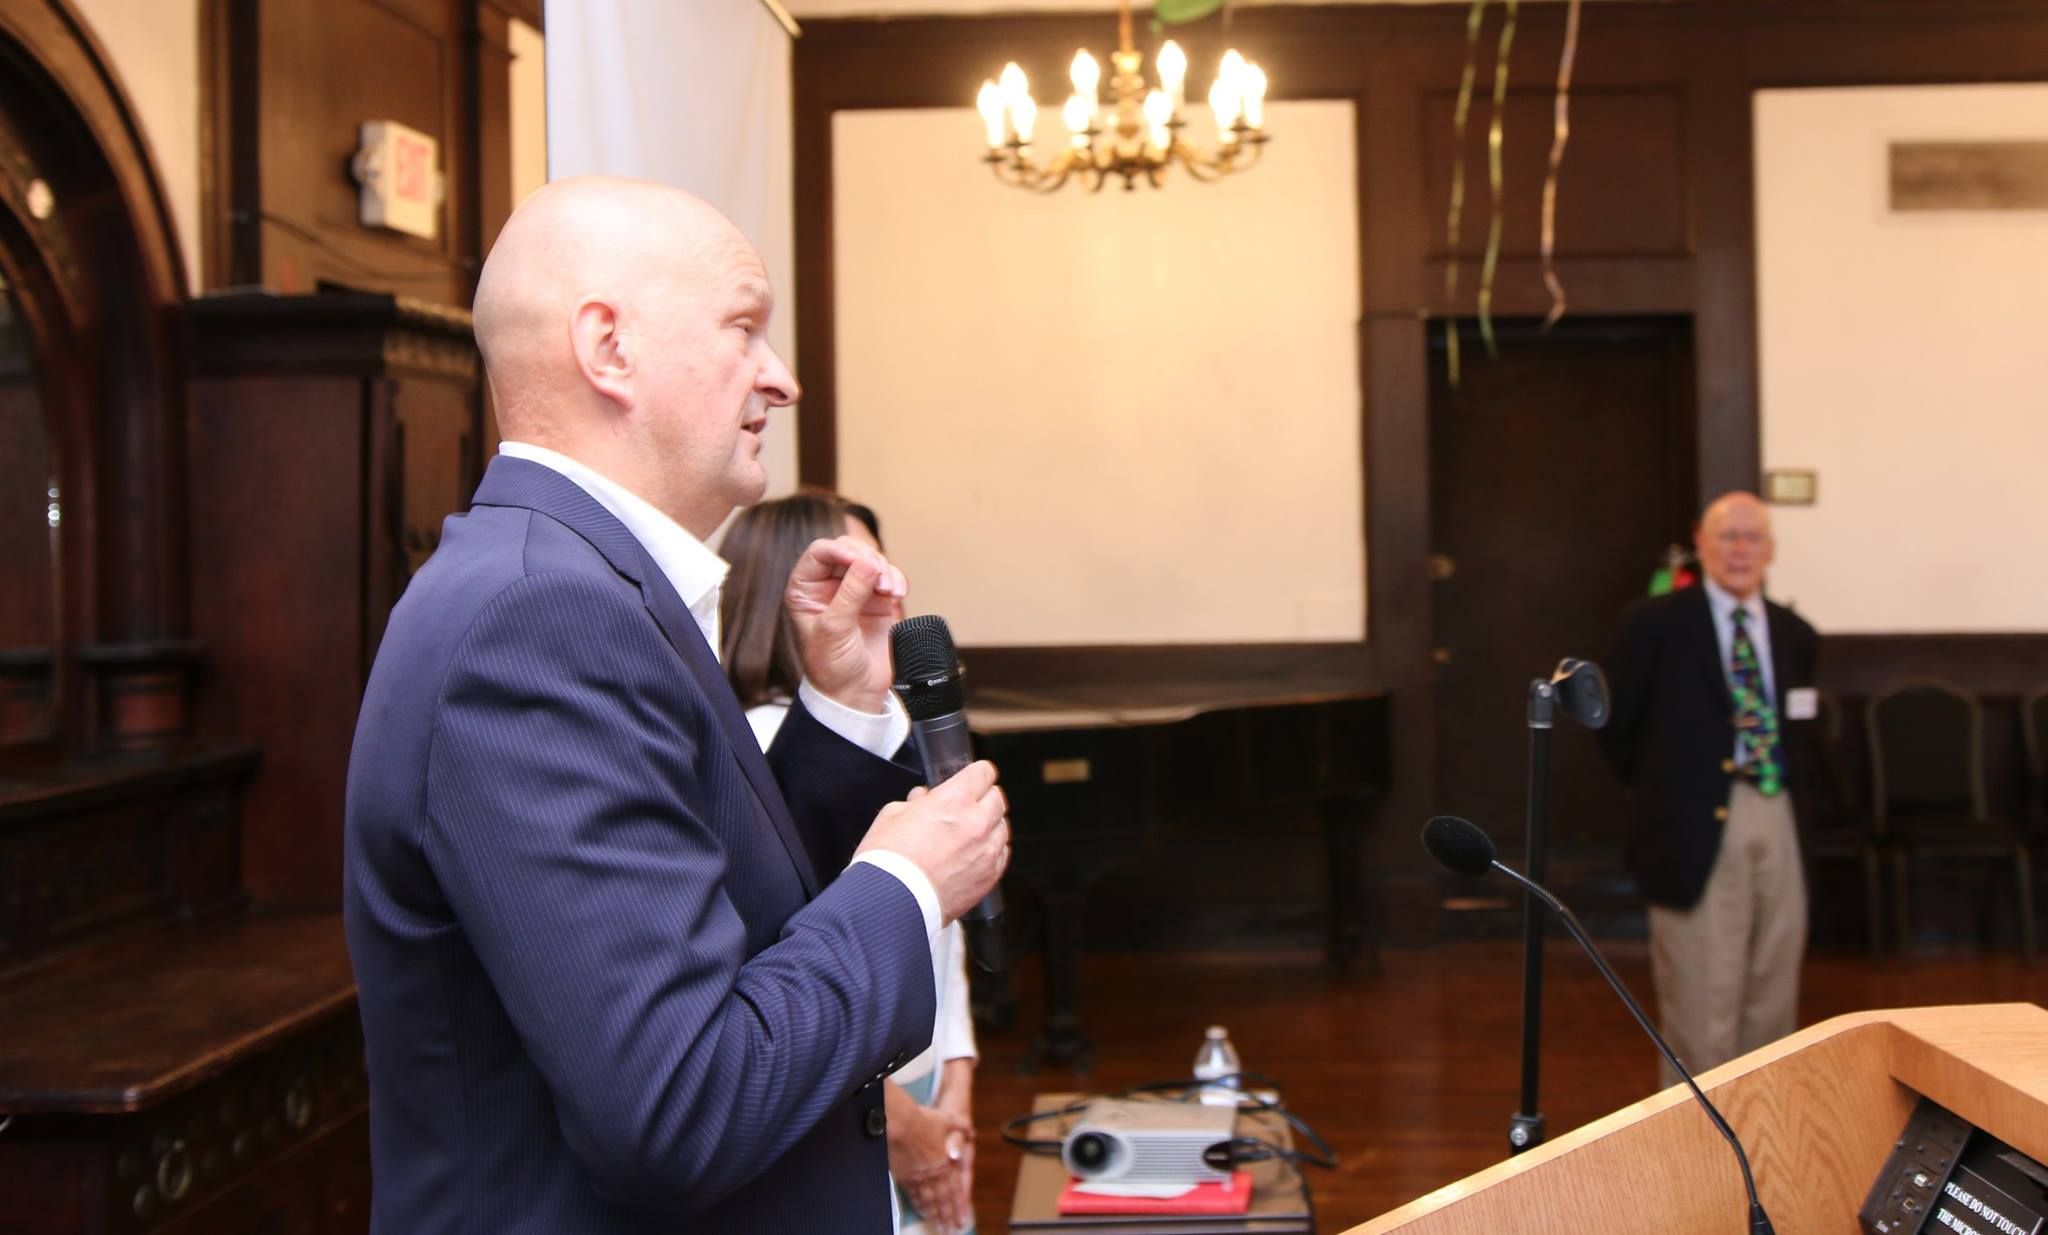 Stjepan Orešković Ph.D., Professor of Public Health at the University of Zagreb School of Medicine, Zagreb, Croatia, welcomes the students and professors to the Opening Reception